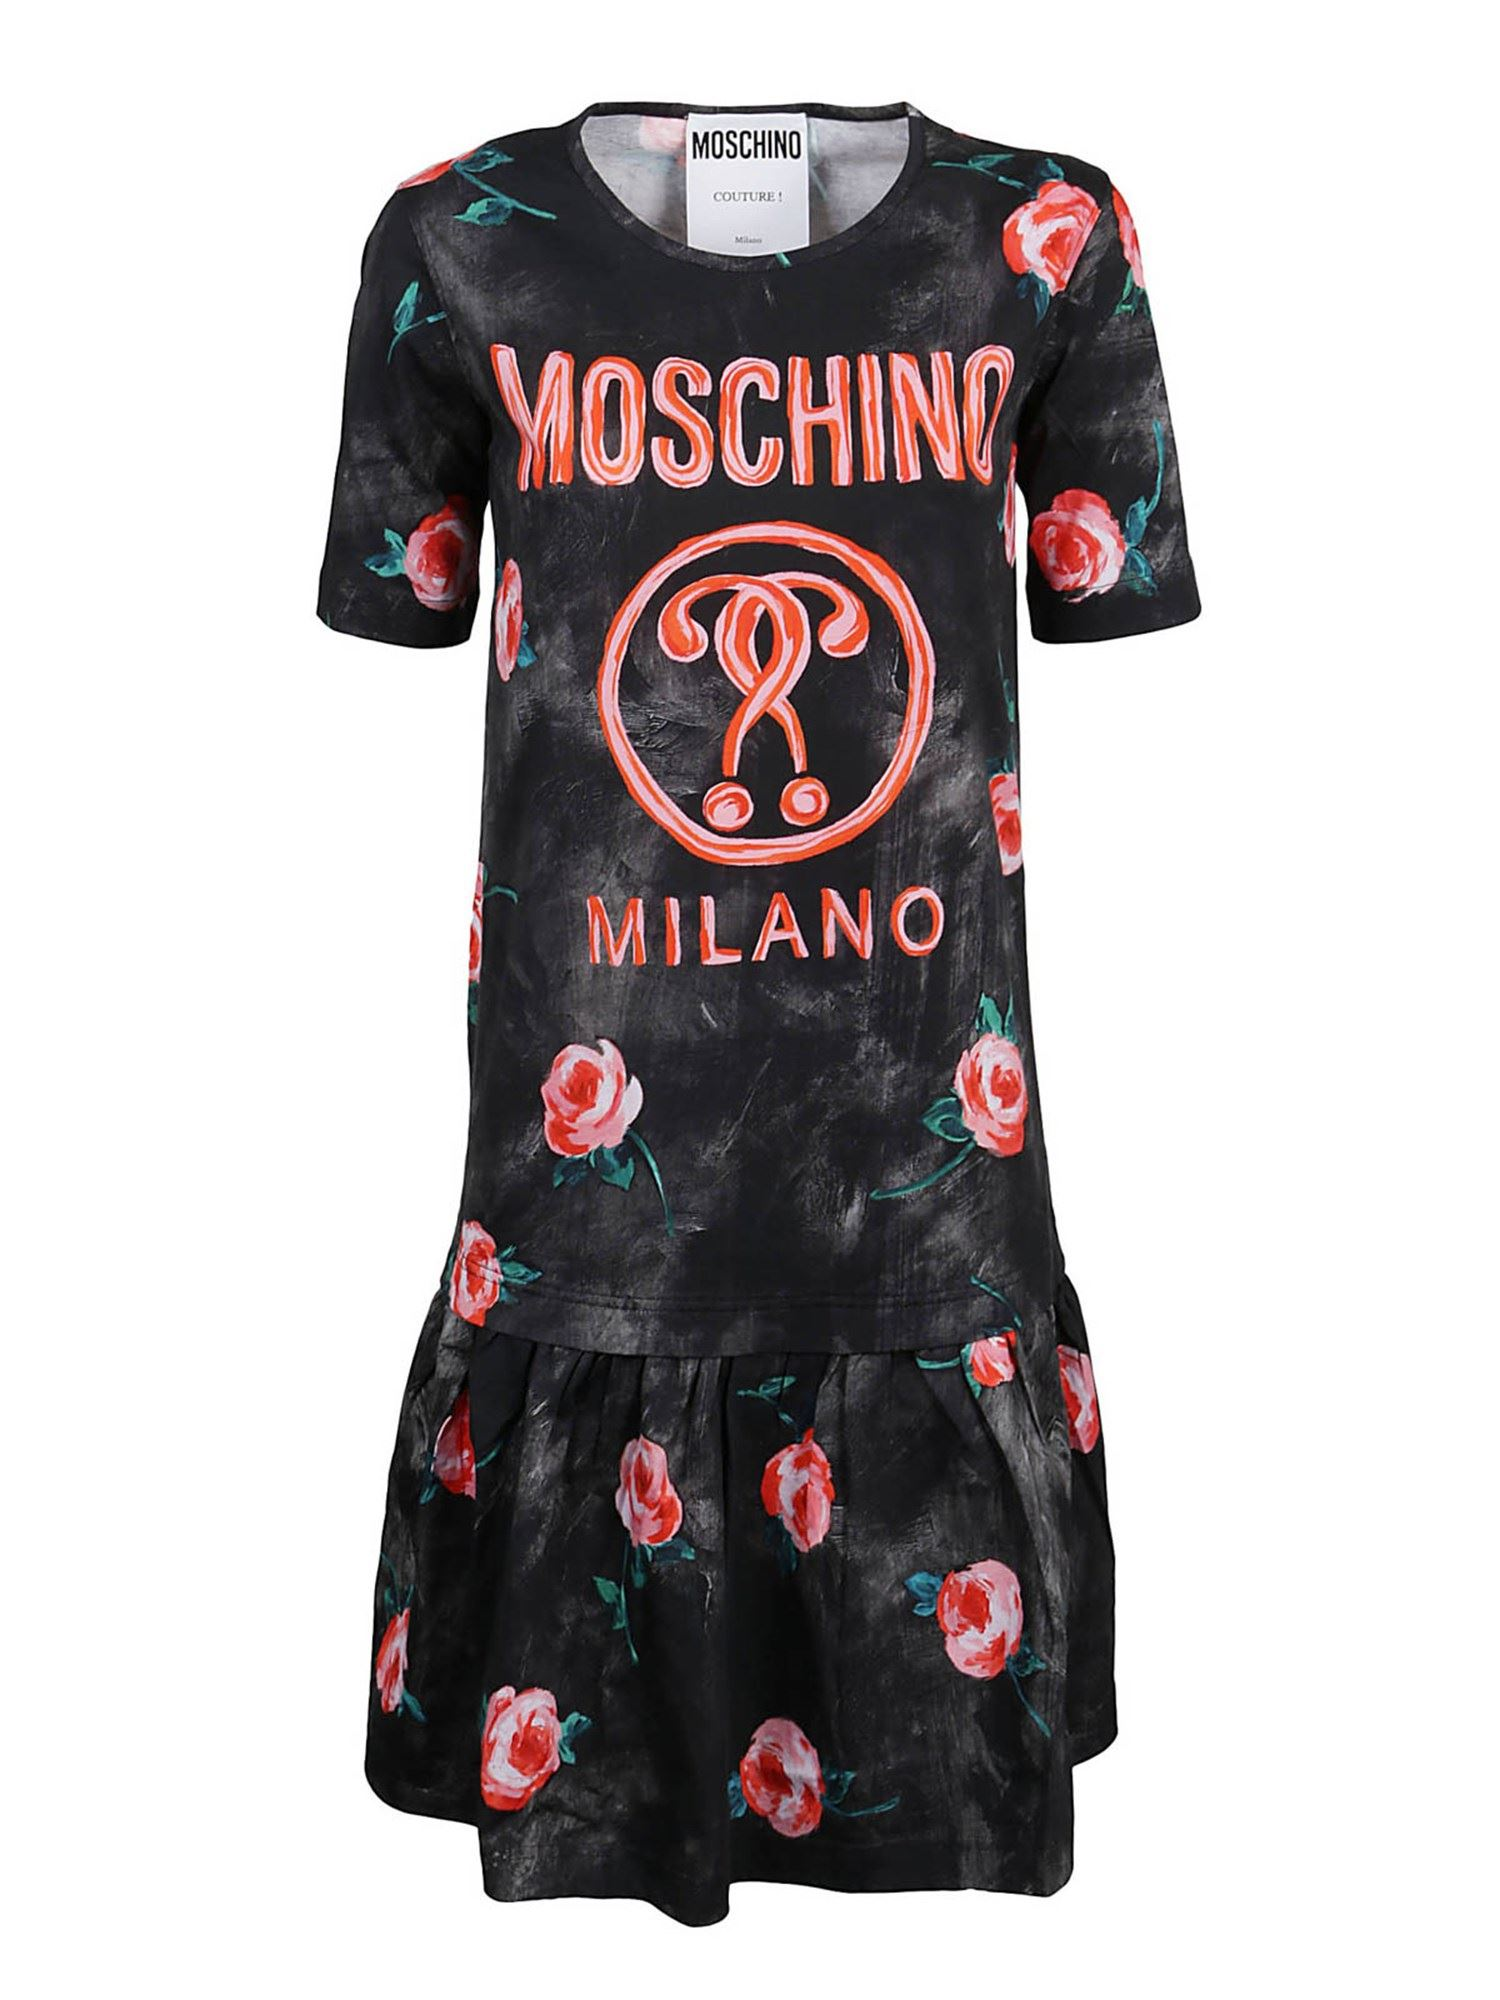 Moschino FLORAL PRINTED DRESS IN BLACK